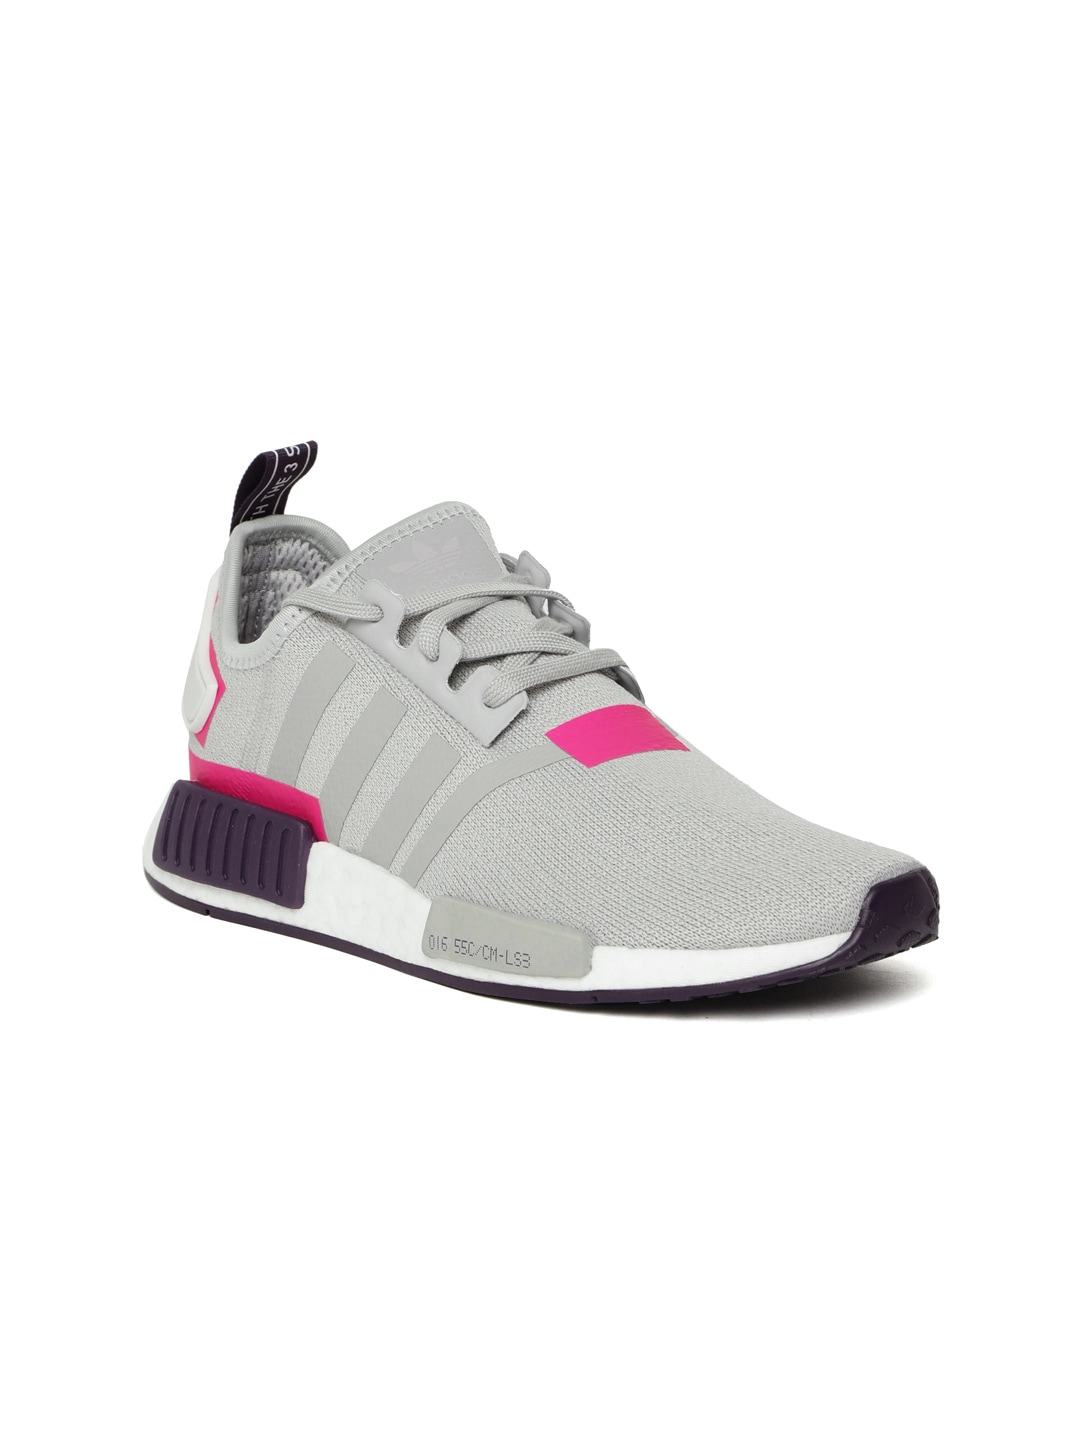 8c2969352 Women s Adidas Shoes - Buy Adidas Shoes for Women Online in India